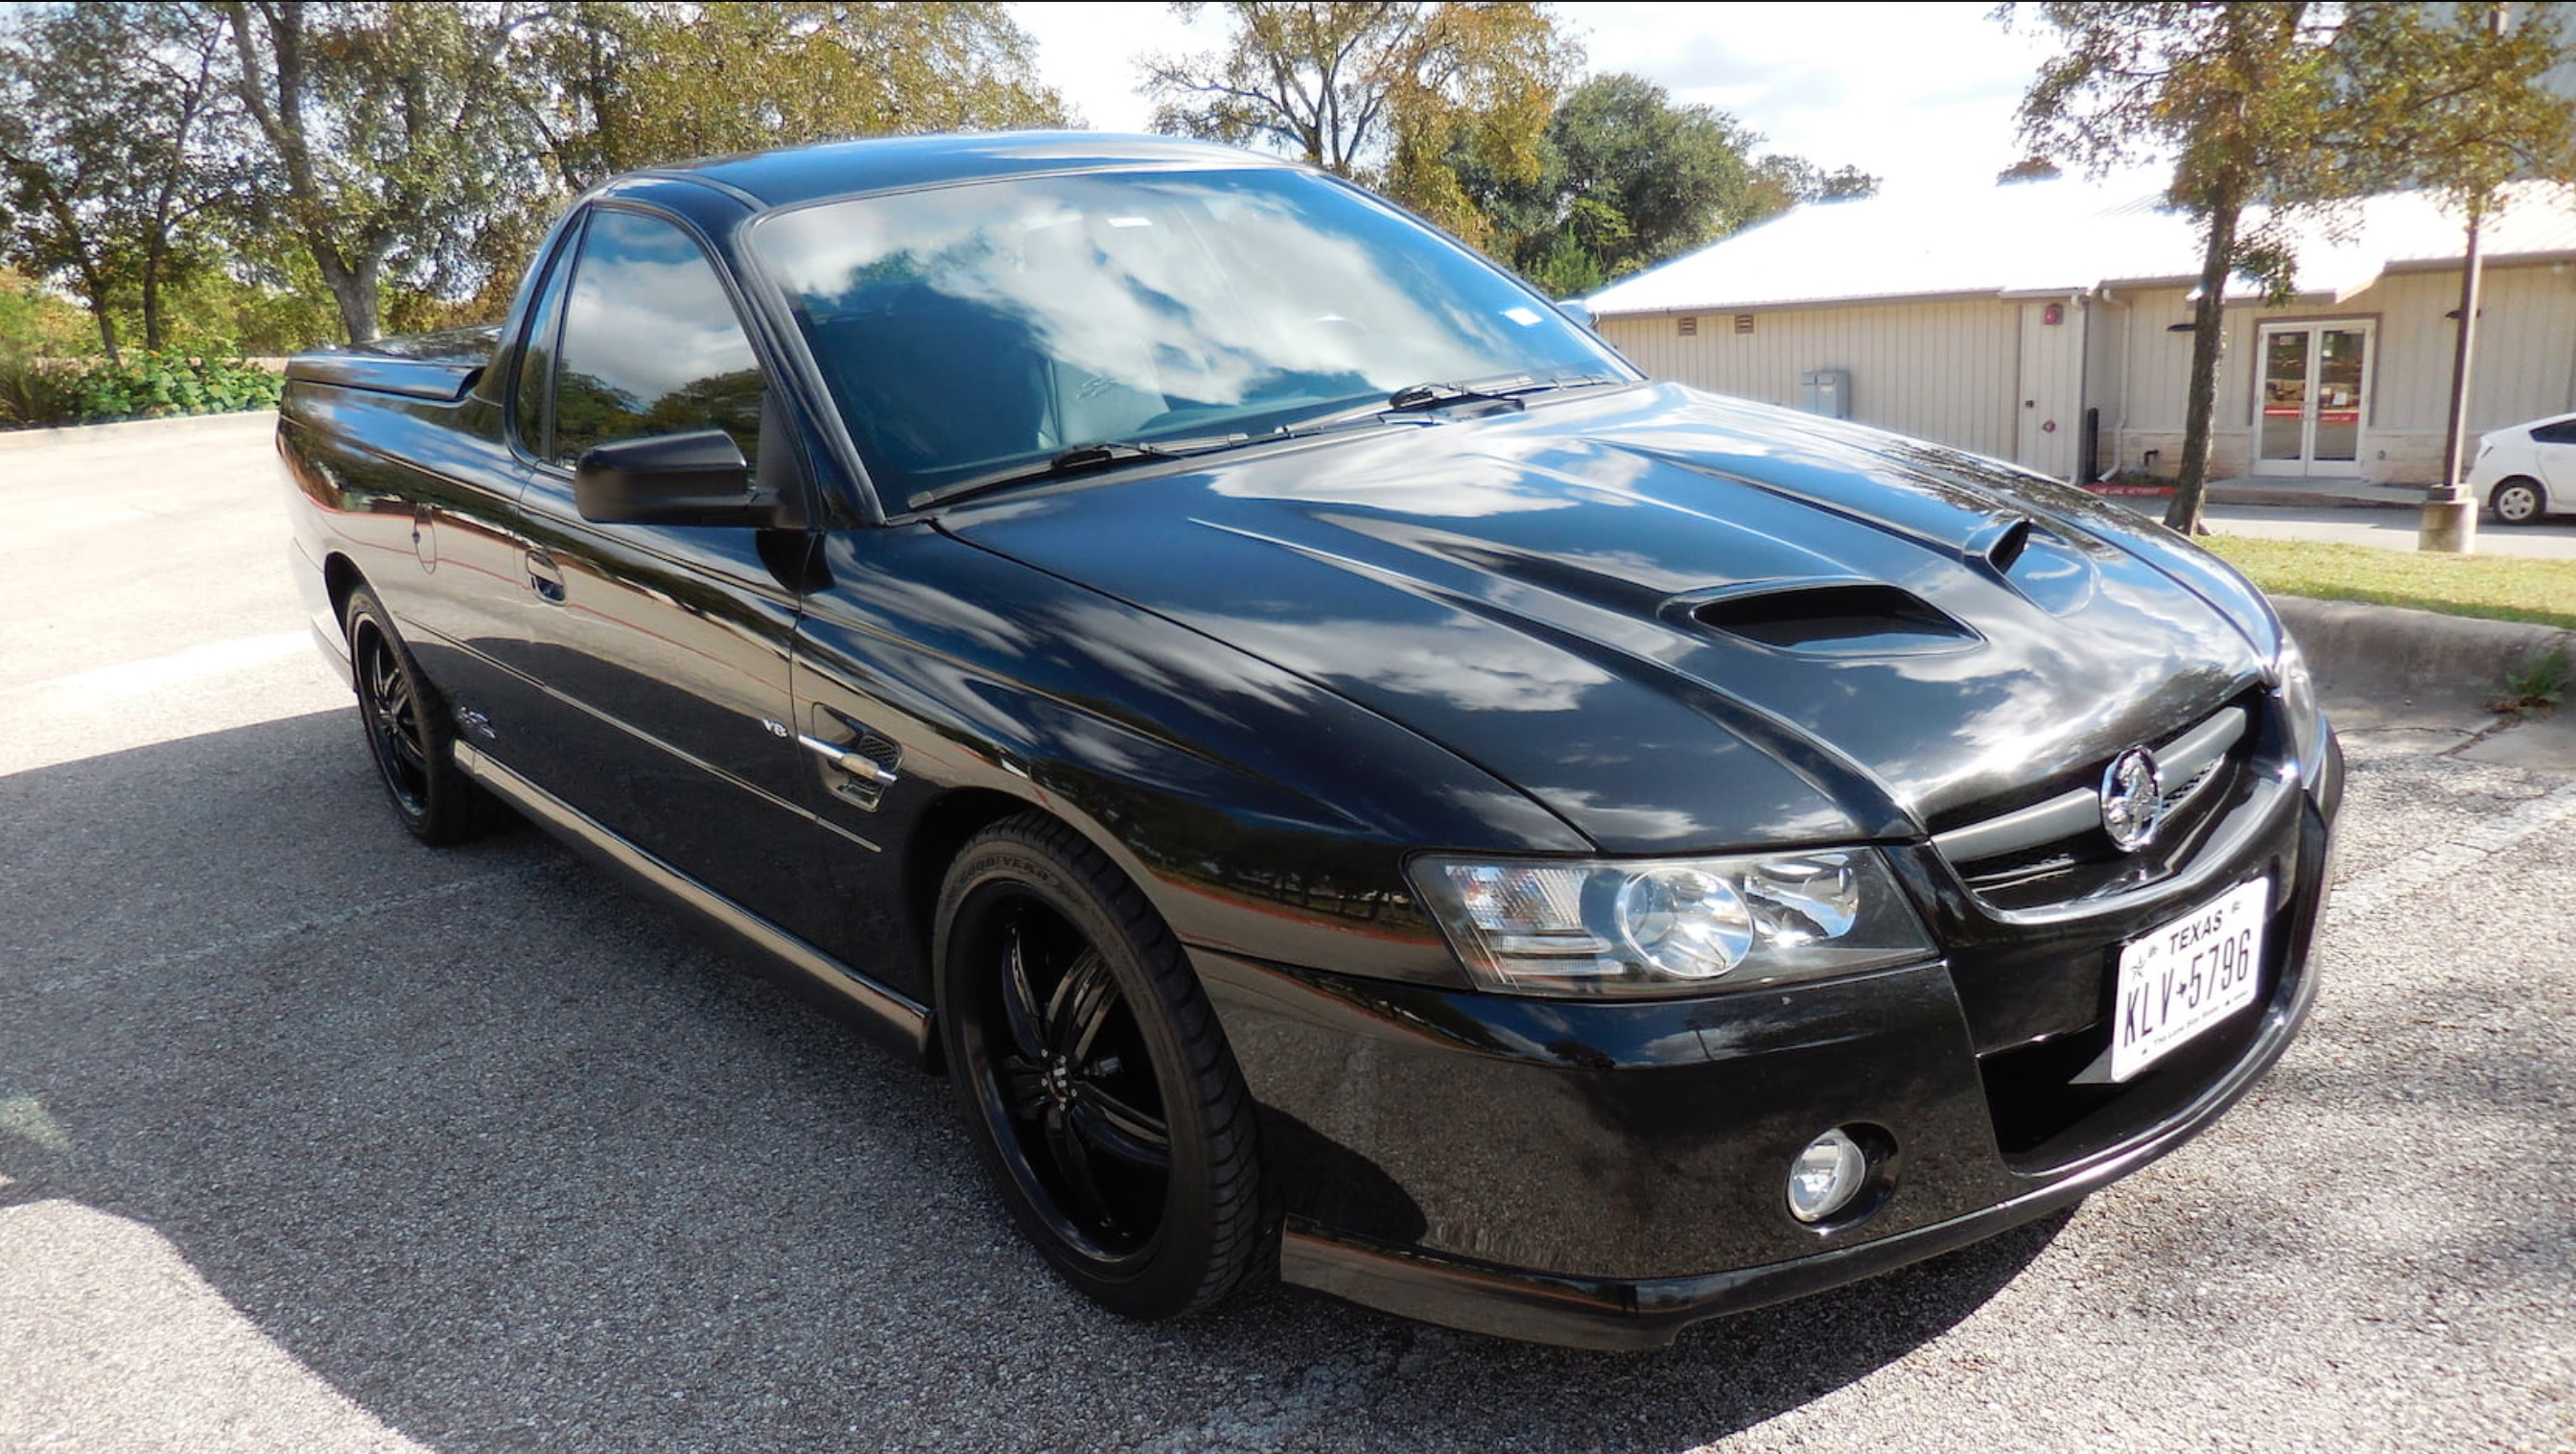 Got Ute Fever? Here's Your Chance To Own A 2005 Holden Ute That's Texas Legal (At Least)